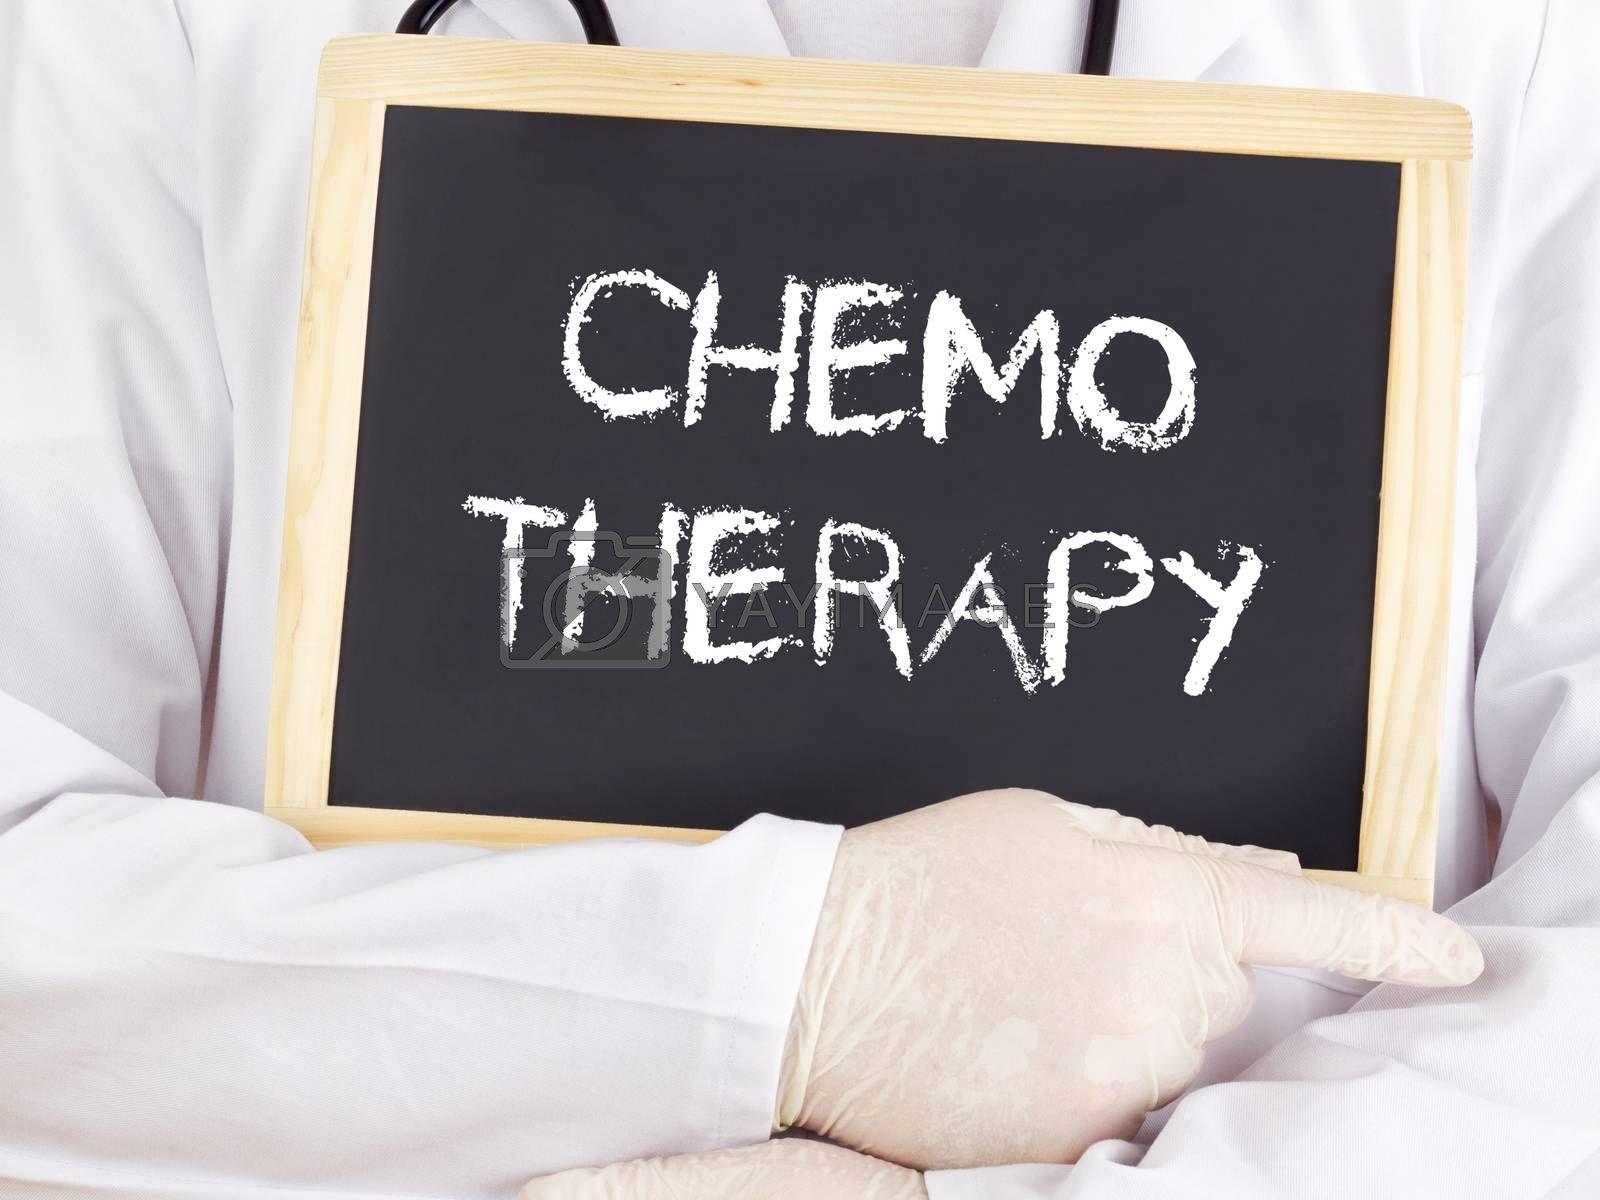 Doctor shows information on blackboard: chemotherapy